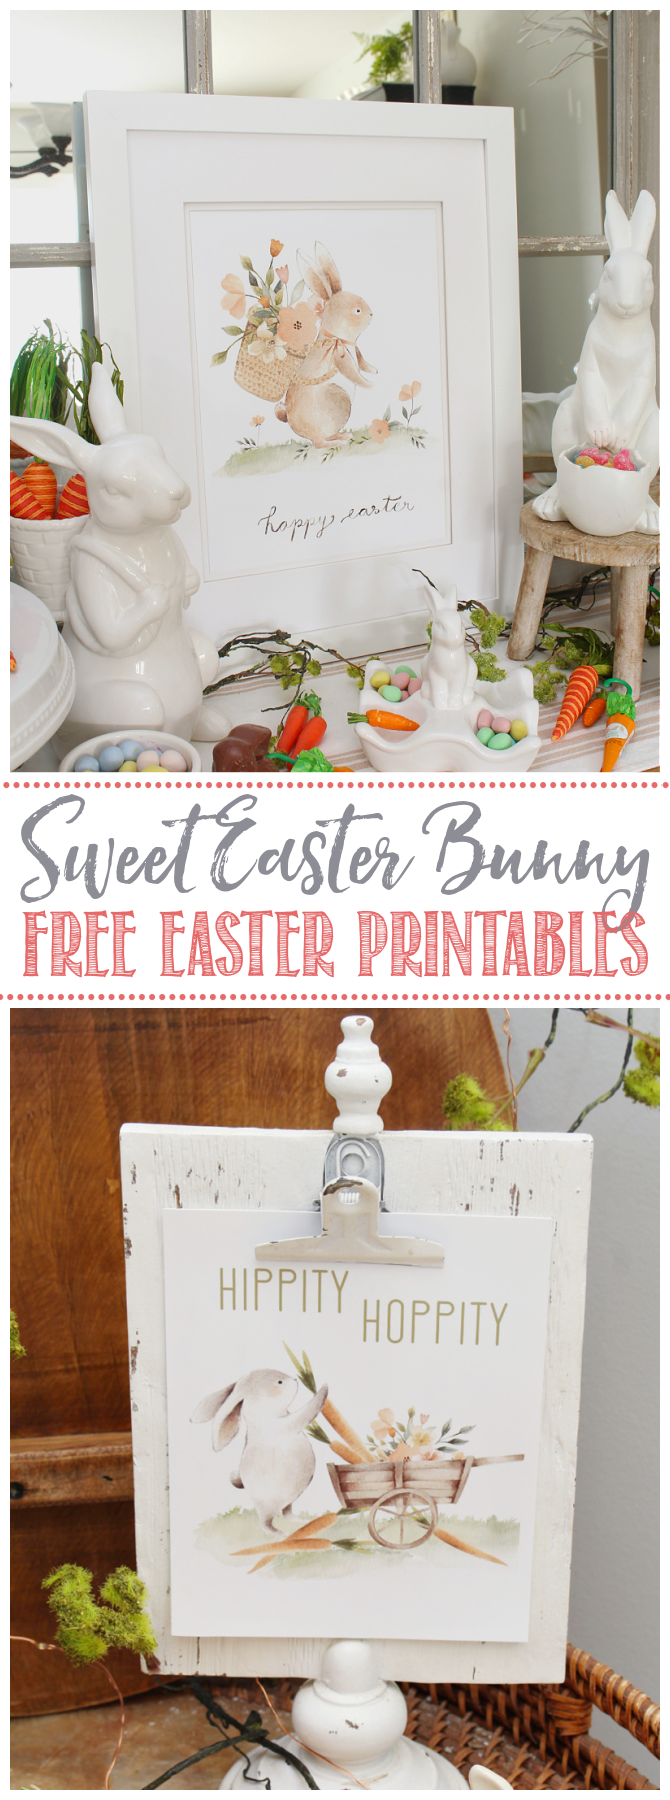 Sweet Easter bunny printables displayed in Easter vignettes.